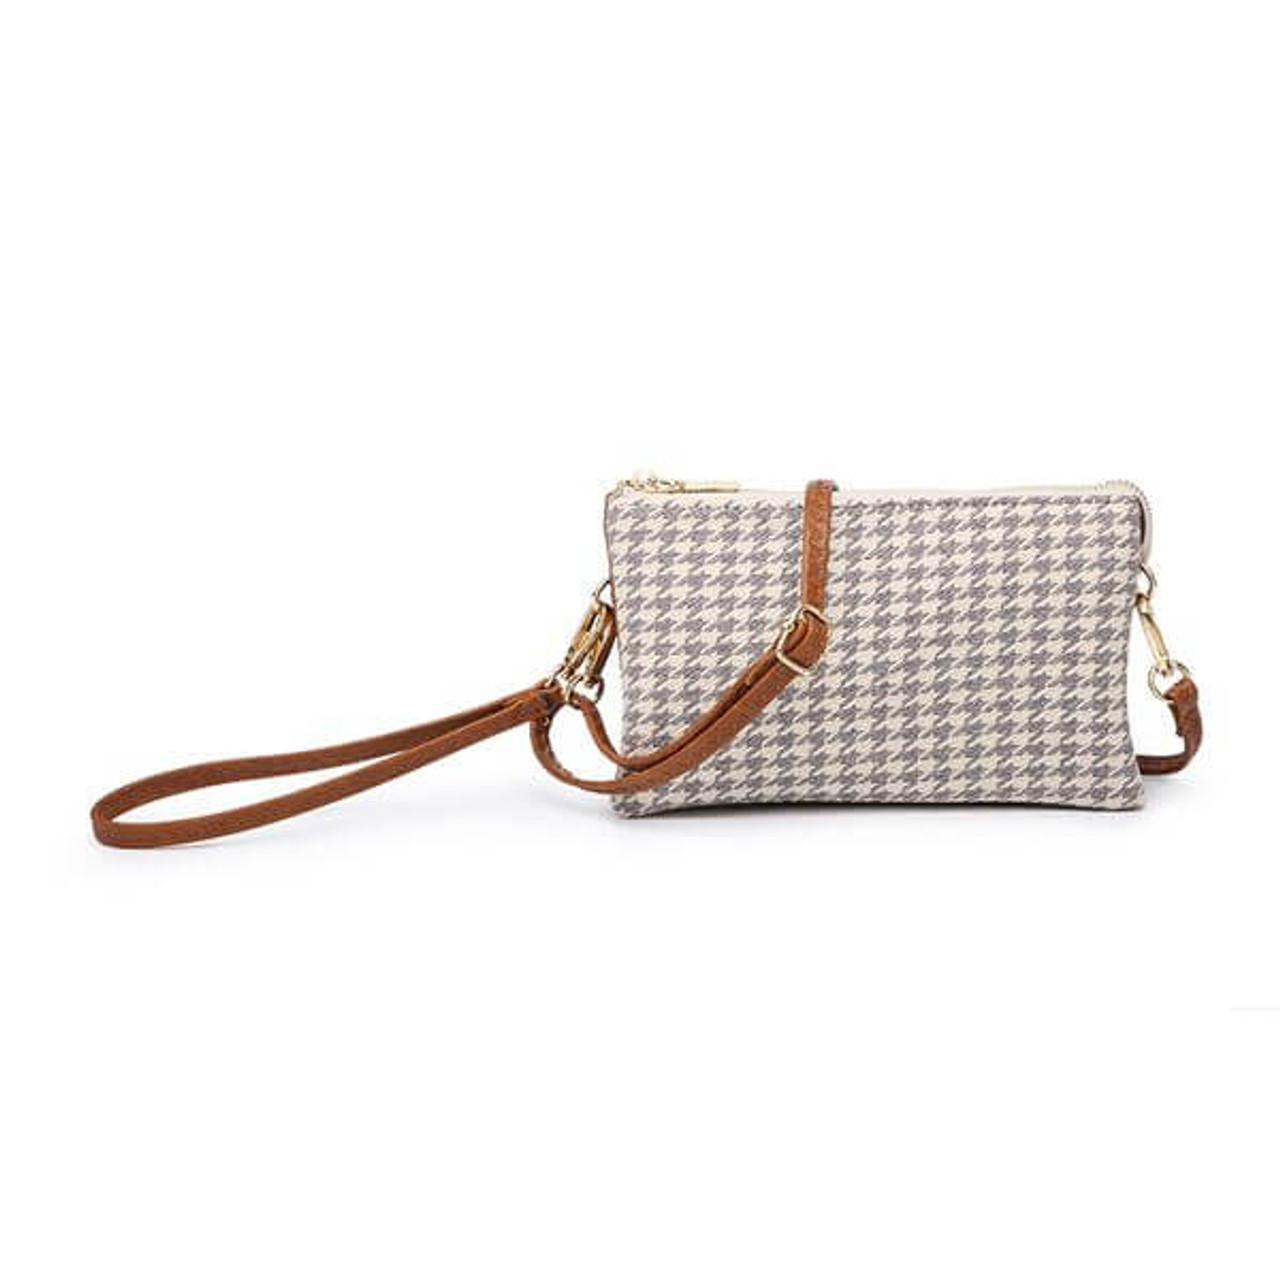 Riley light grey houndstooth Wristlet and adjustable crossbody strap included. Three separate interior compartments with six credit card slots. Top zipper closure.